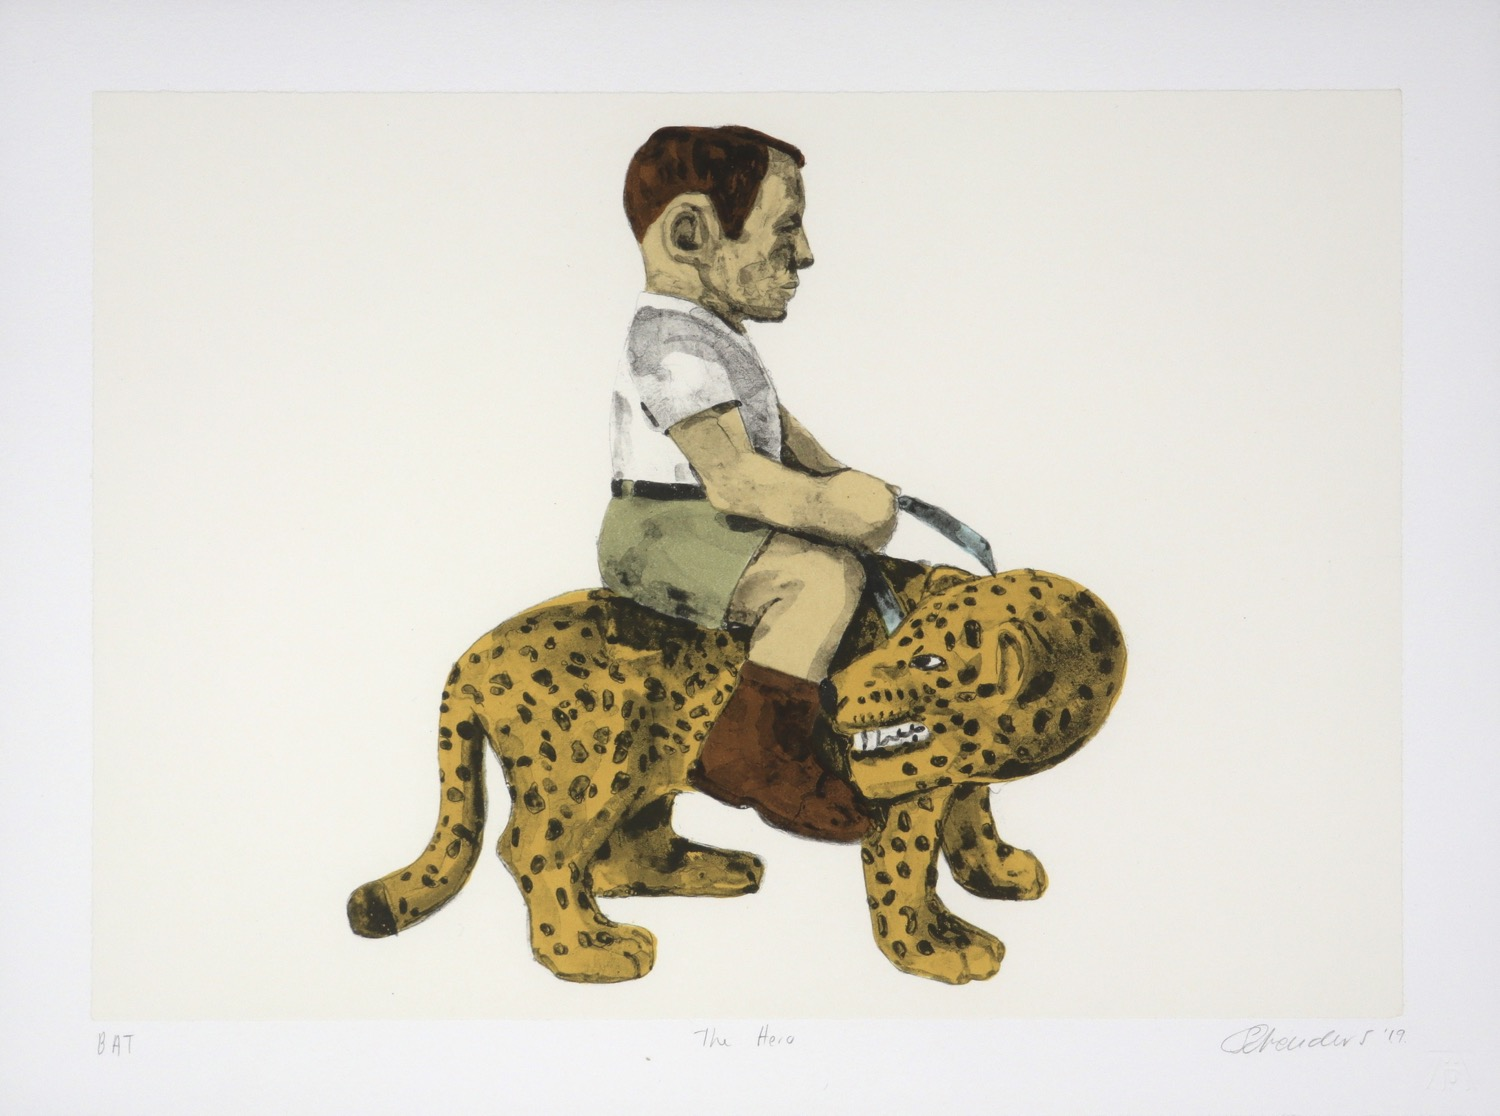 a man wearing khaki shorts and a white shirt riding on the back of a leopard.